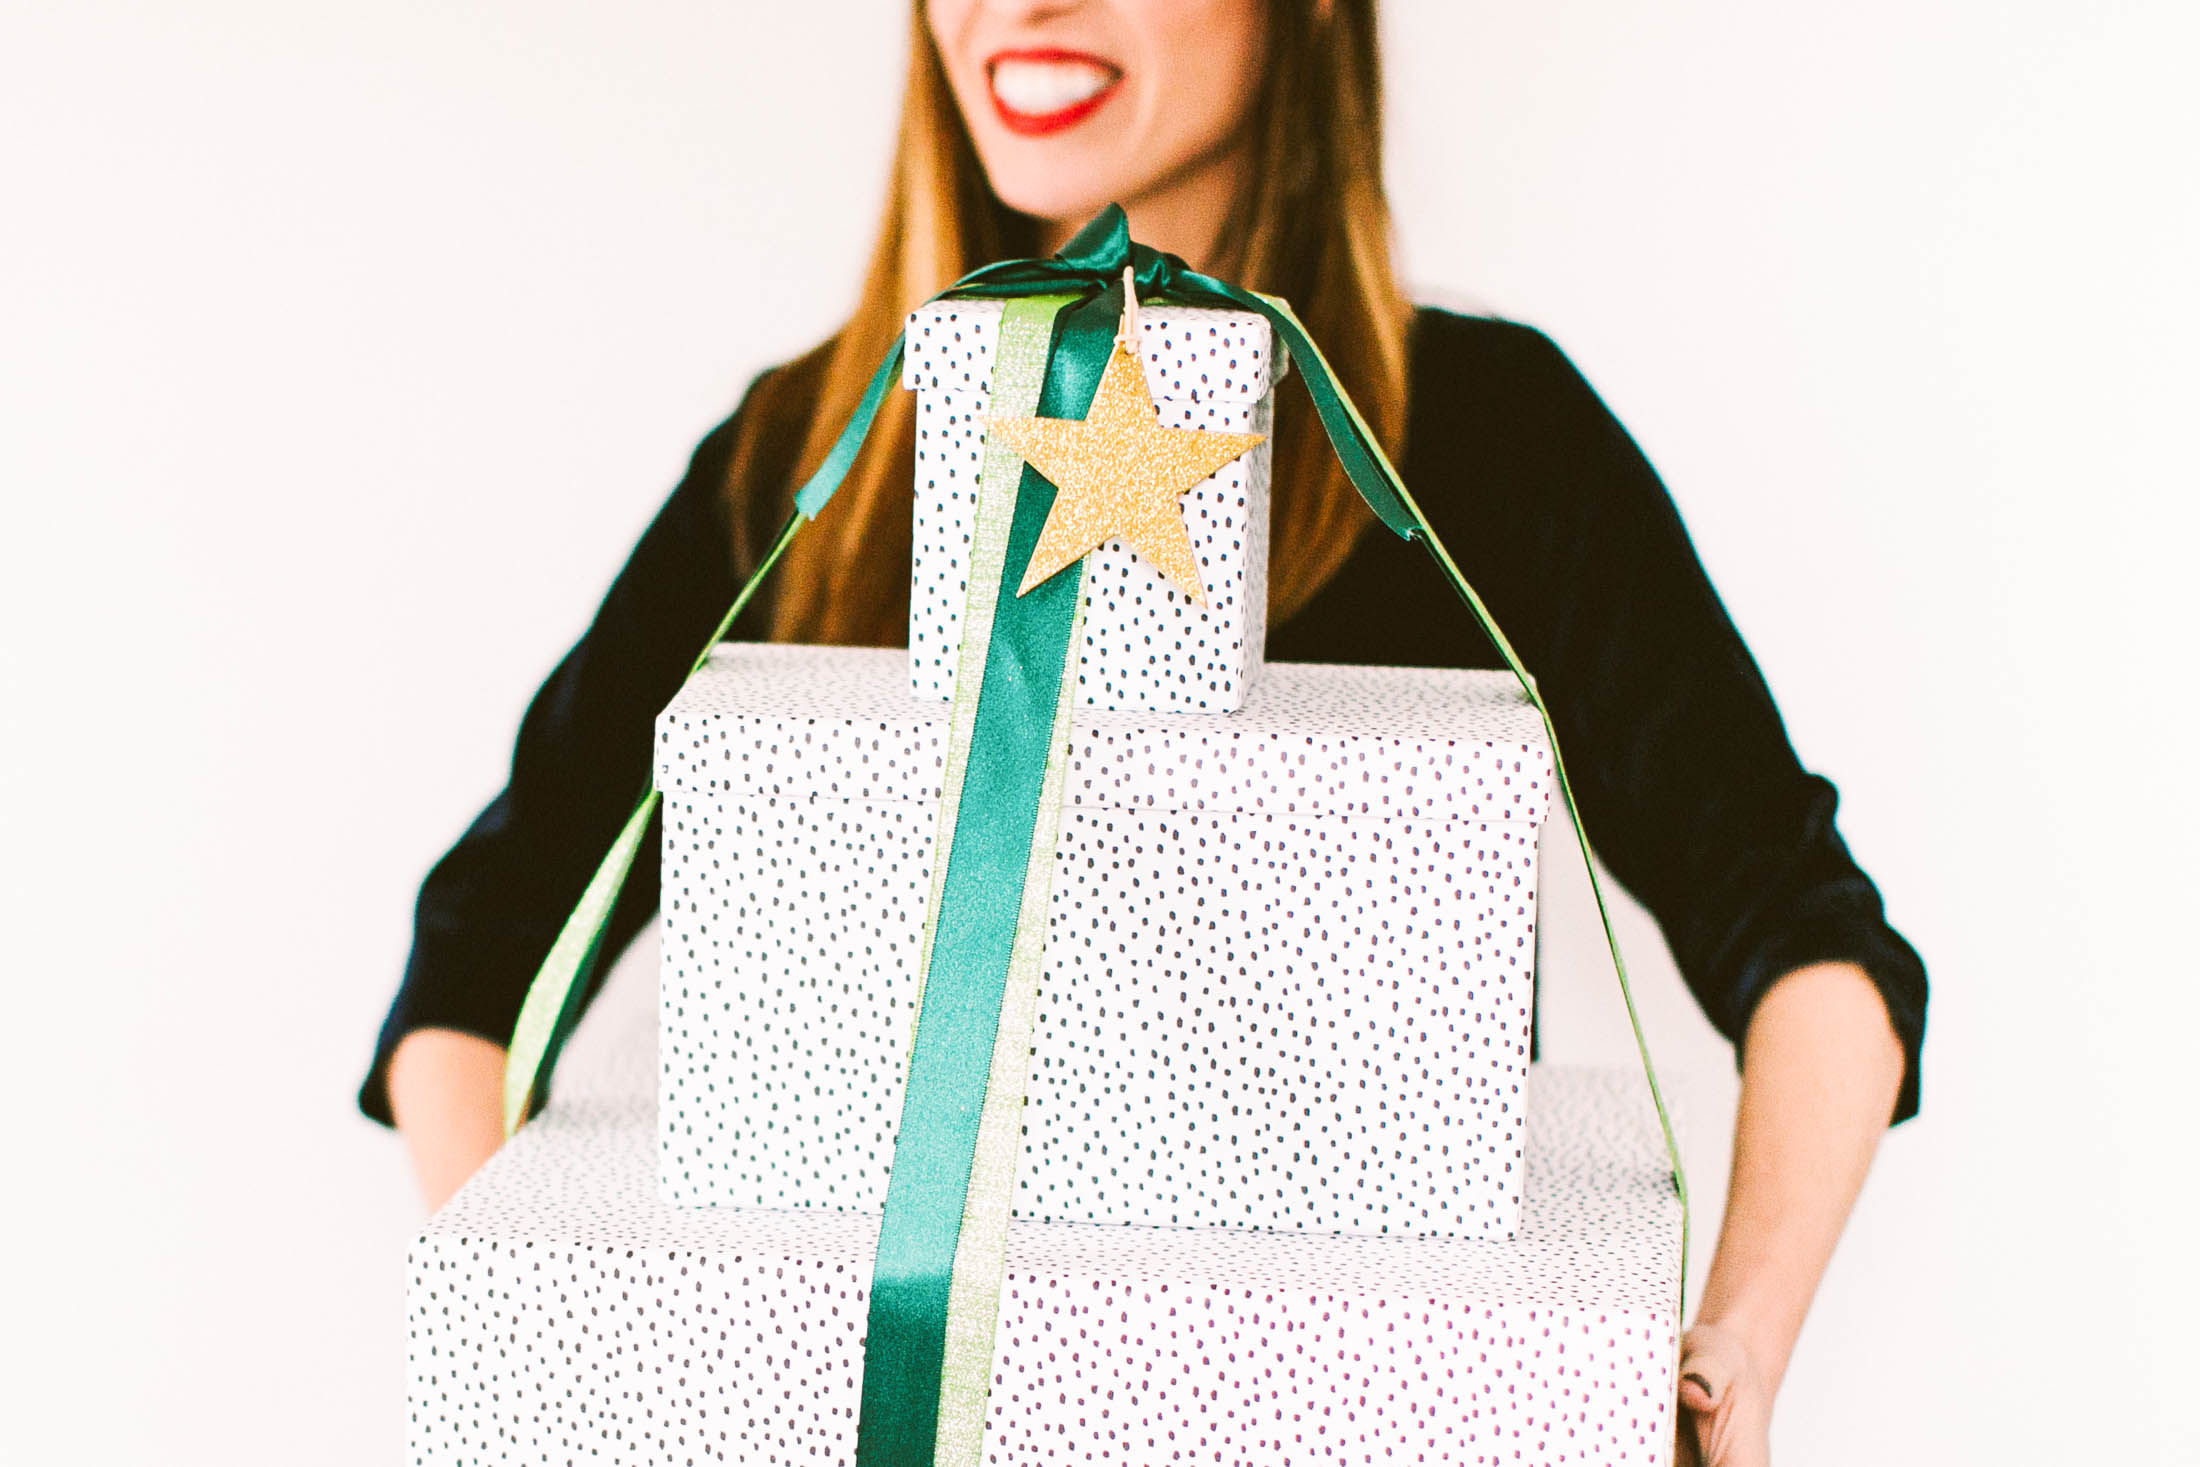 727f9fd762d8 HOLIDAY GIFT IDEAS - The Mom Edit